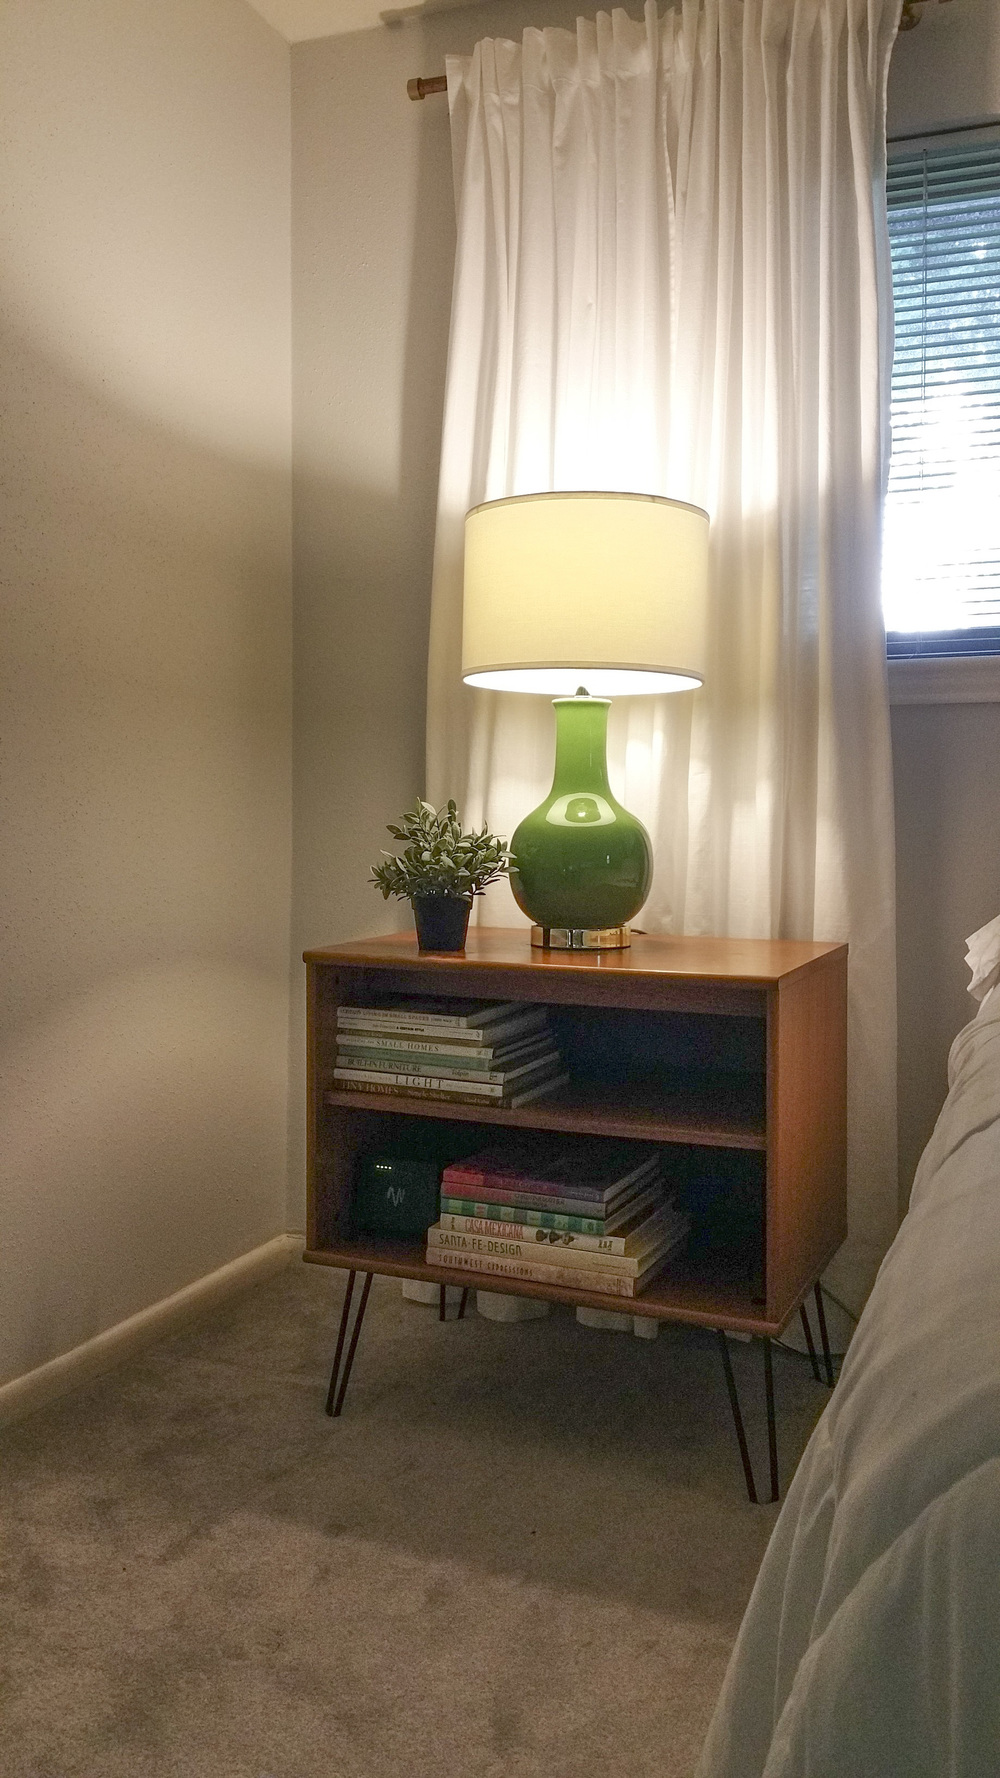 DIY project turning TV cart into nightstand - phone photo